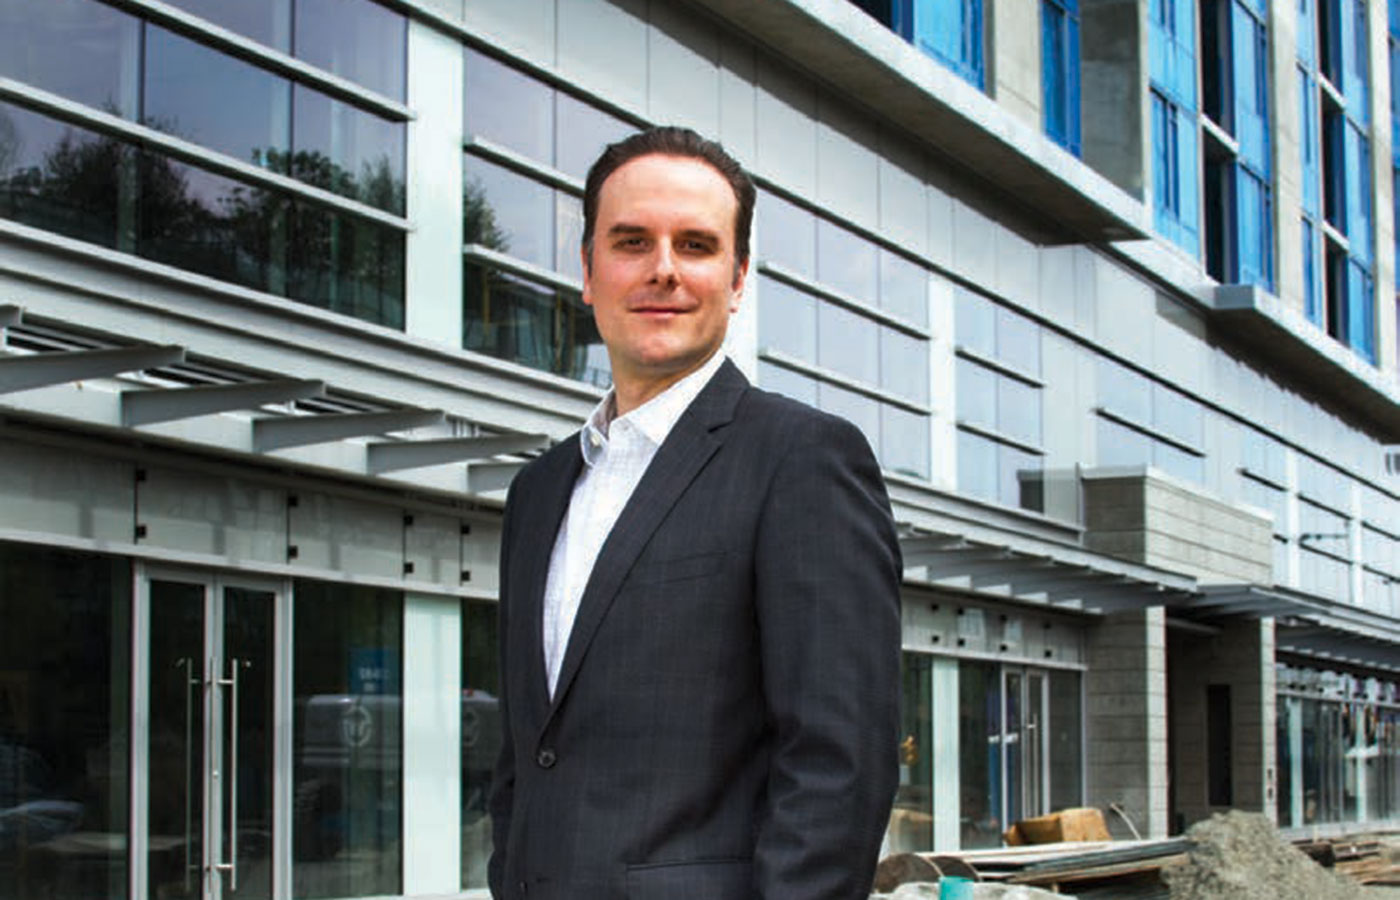 Jesse Galicz is vice president of development for Vanprop Investments, which owns Lansdowne Centre